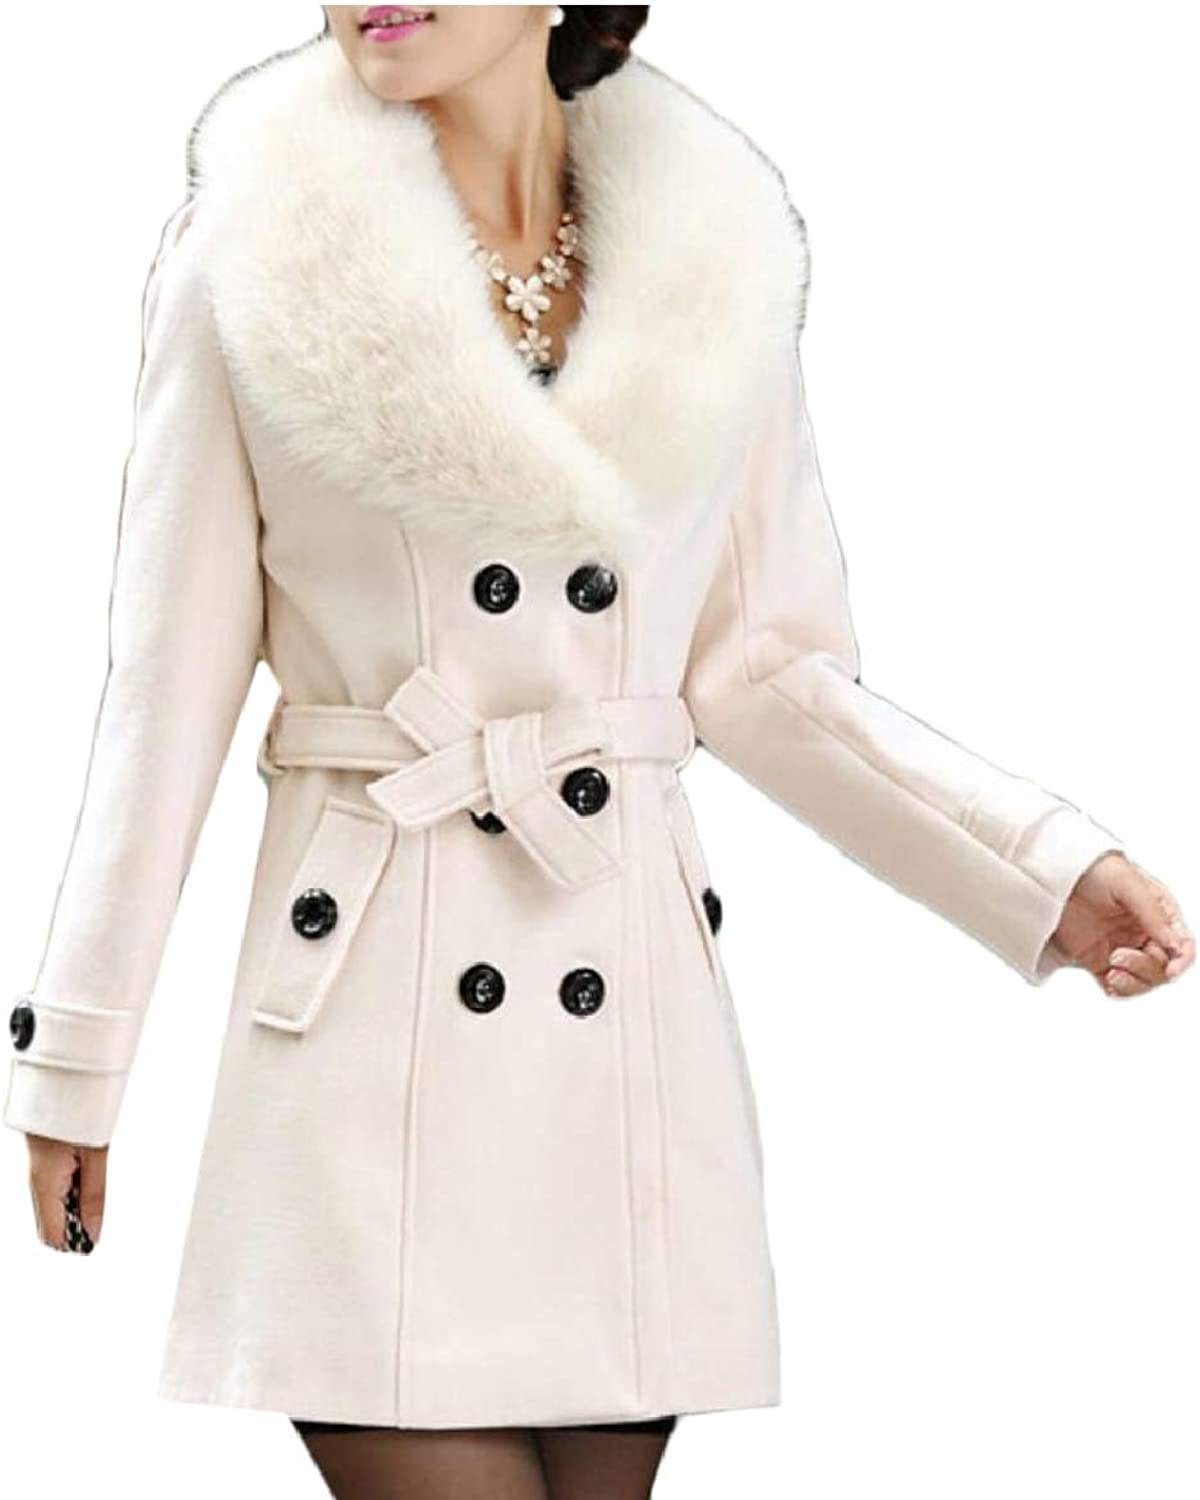 SmeilingCA Womens DoubleBreasted Slim Faux Fur Collar Wool Coat Overcoat